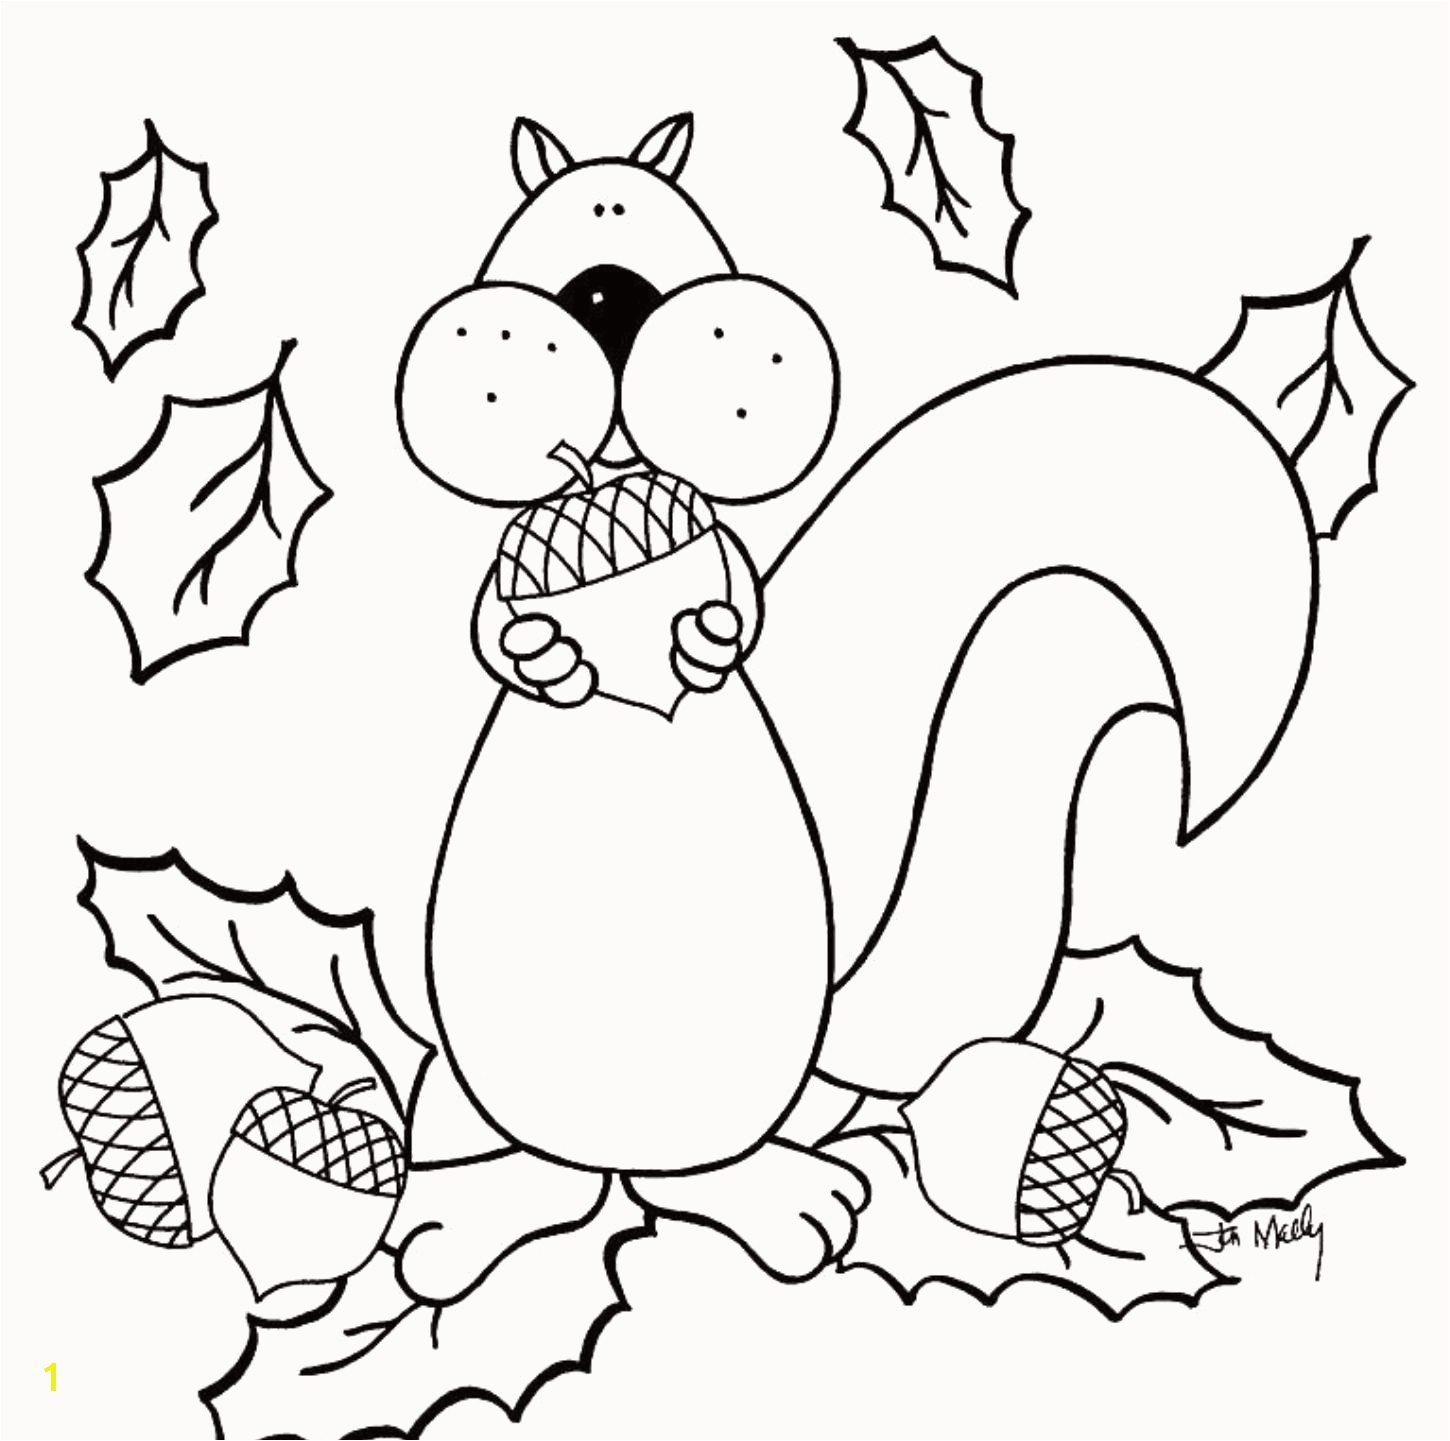 Cool Coloring Pages Of Animals Coloring Pages Kids Unique to Color Animals Awesome Fall Coloring